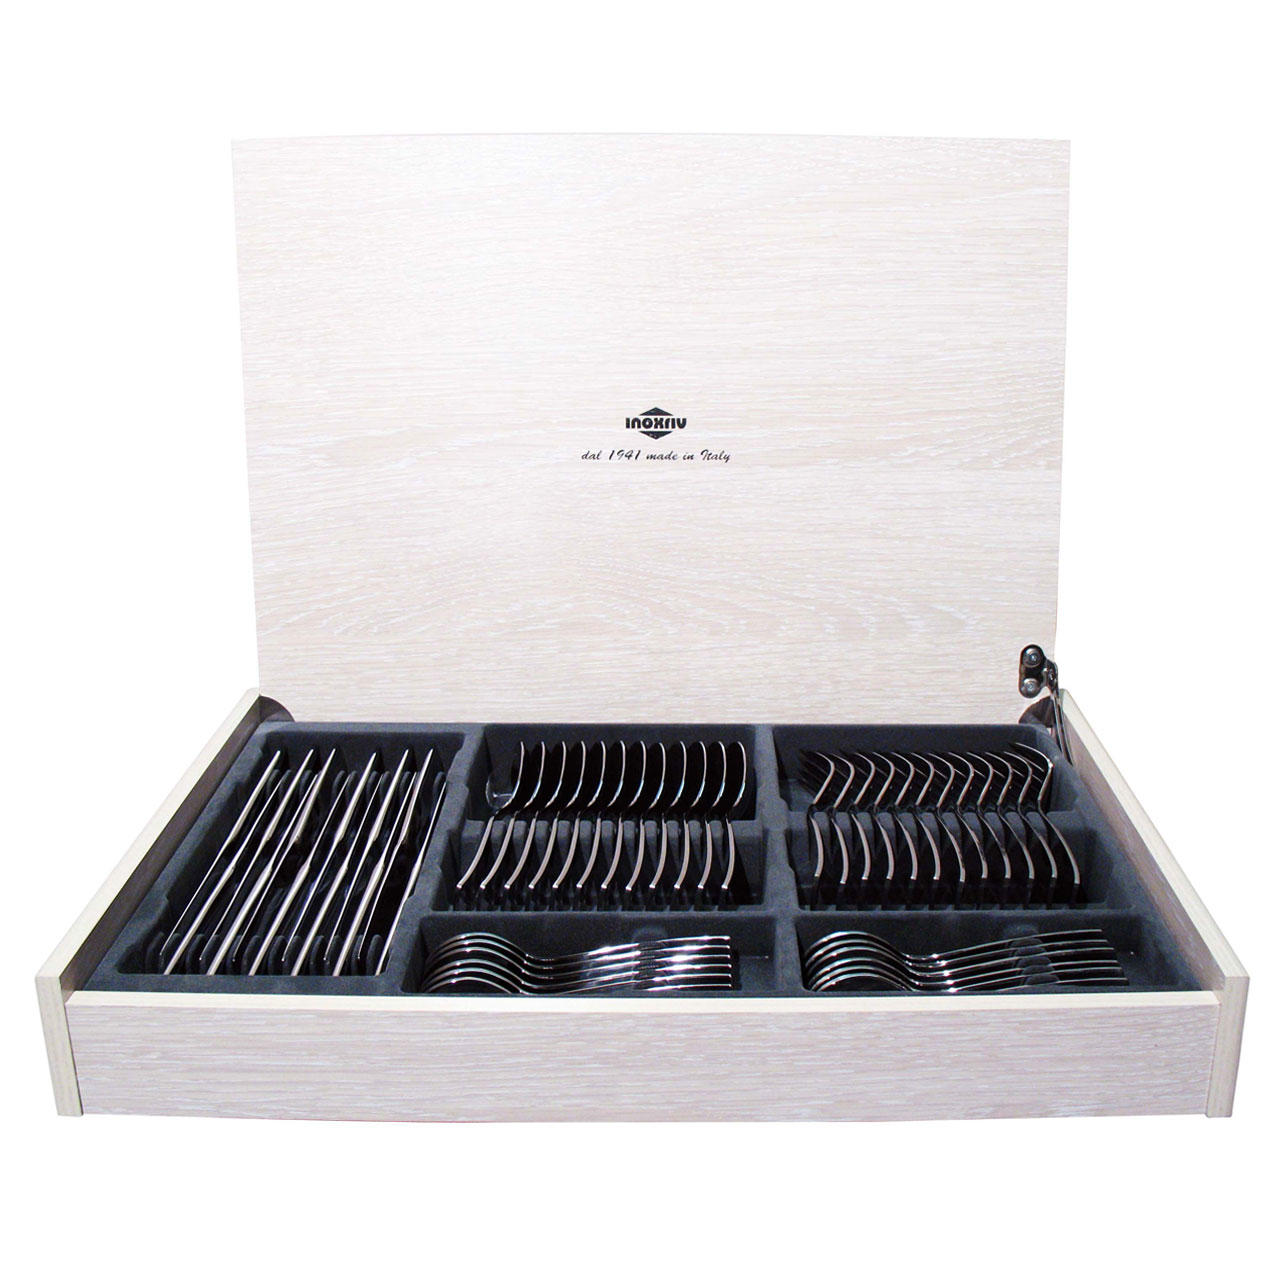 66020072 72 pcs. cutlery set Special Luxury Case